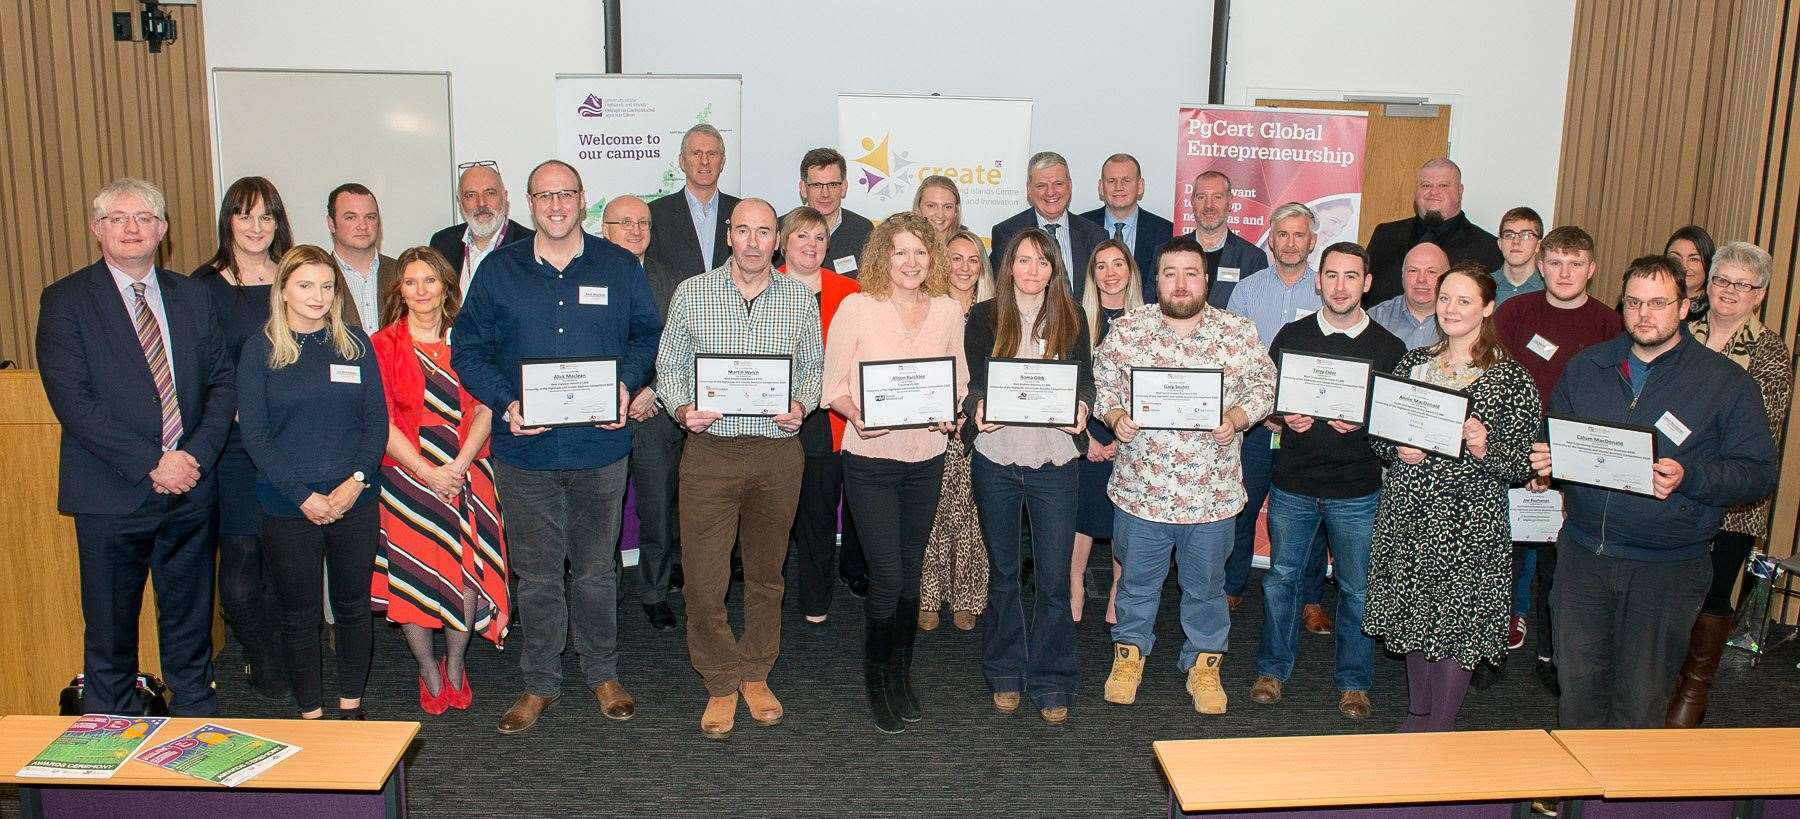 All the finalists, judges and sponsors in the University of the Highlands and Islands Business Competition. Picture: Angus Findlay